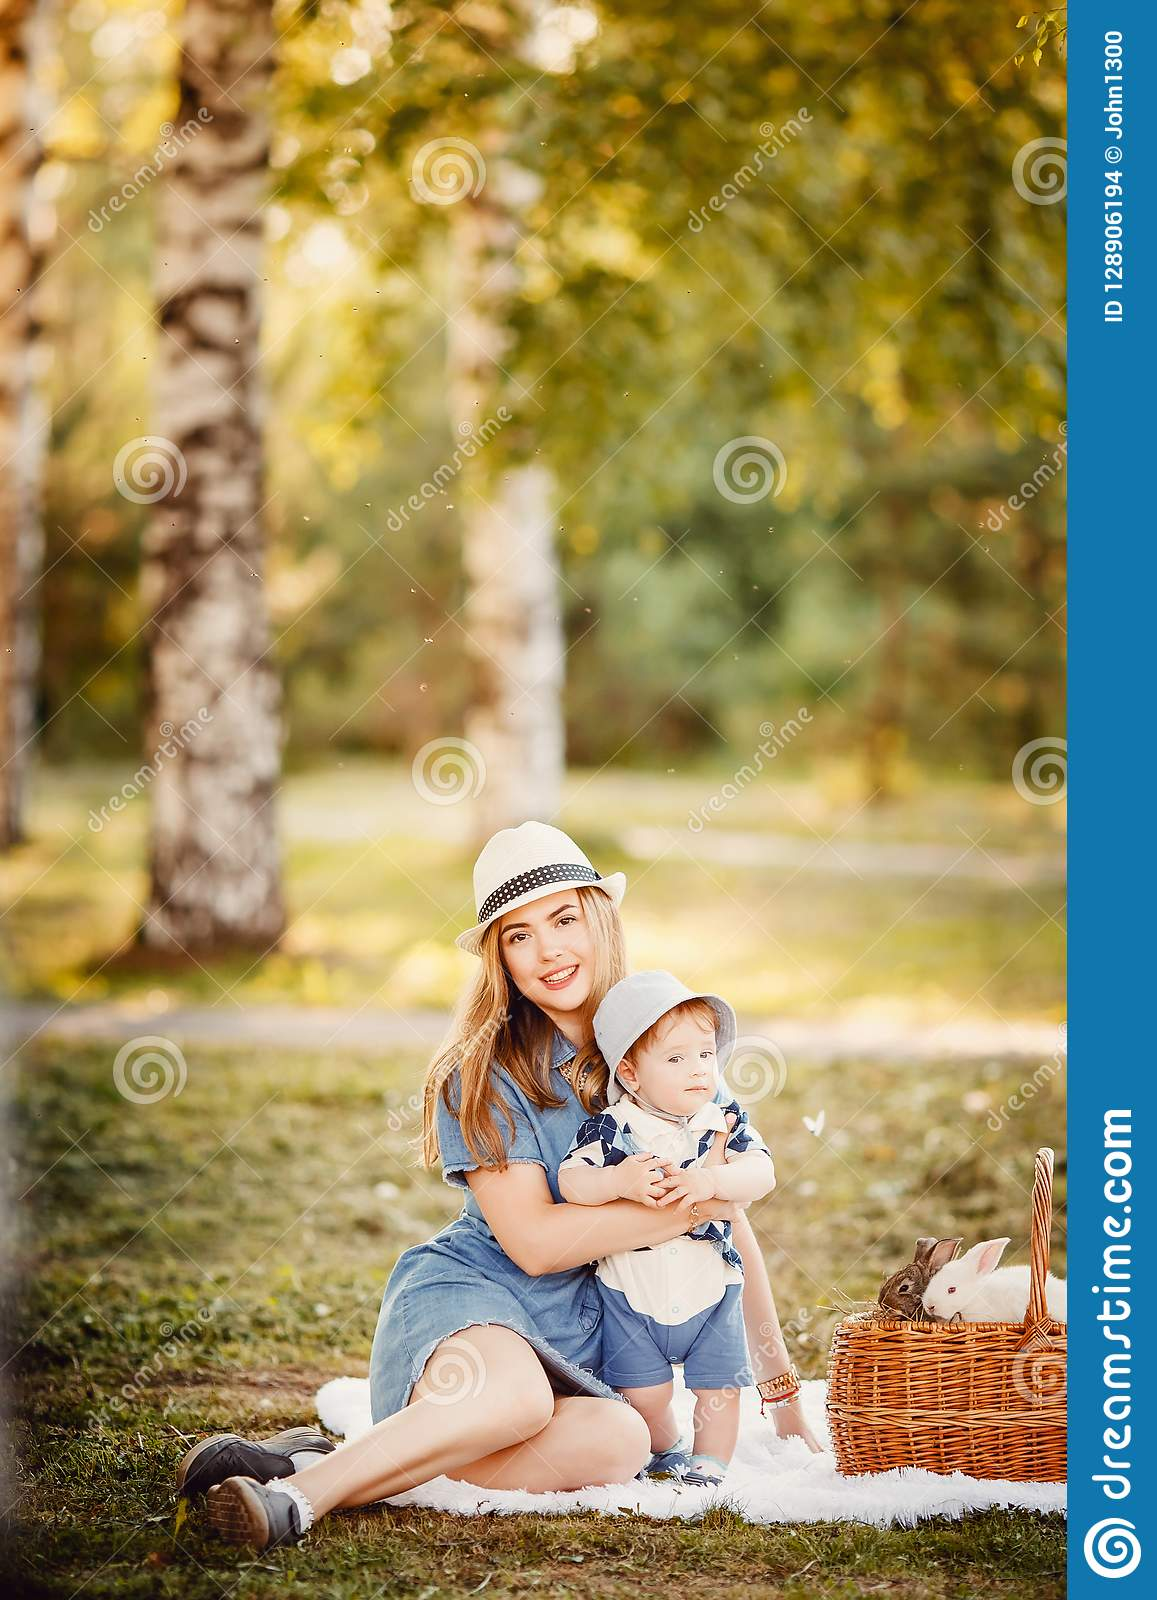 Ideal family: mother and baby